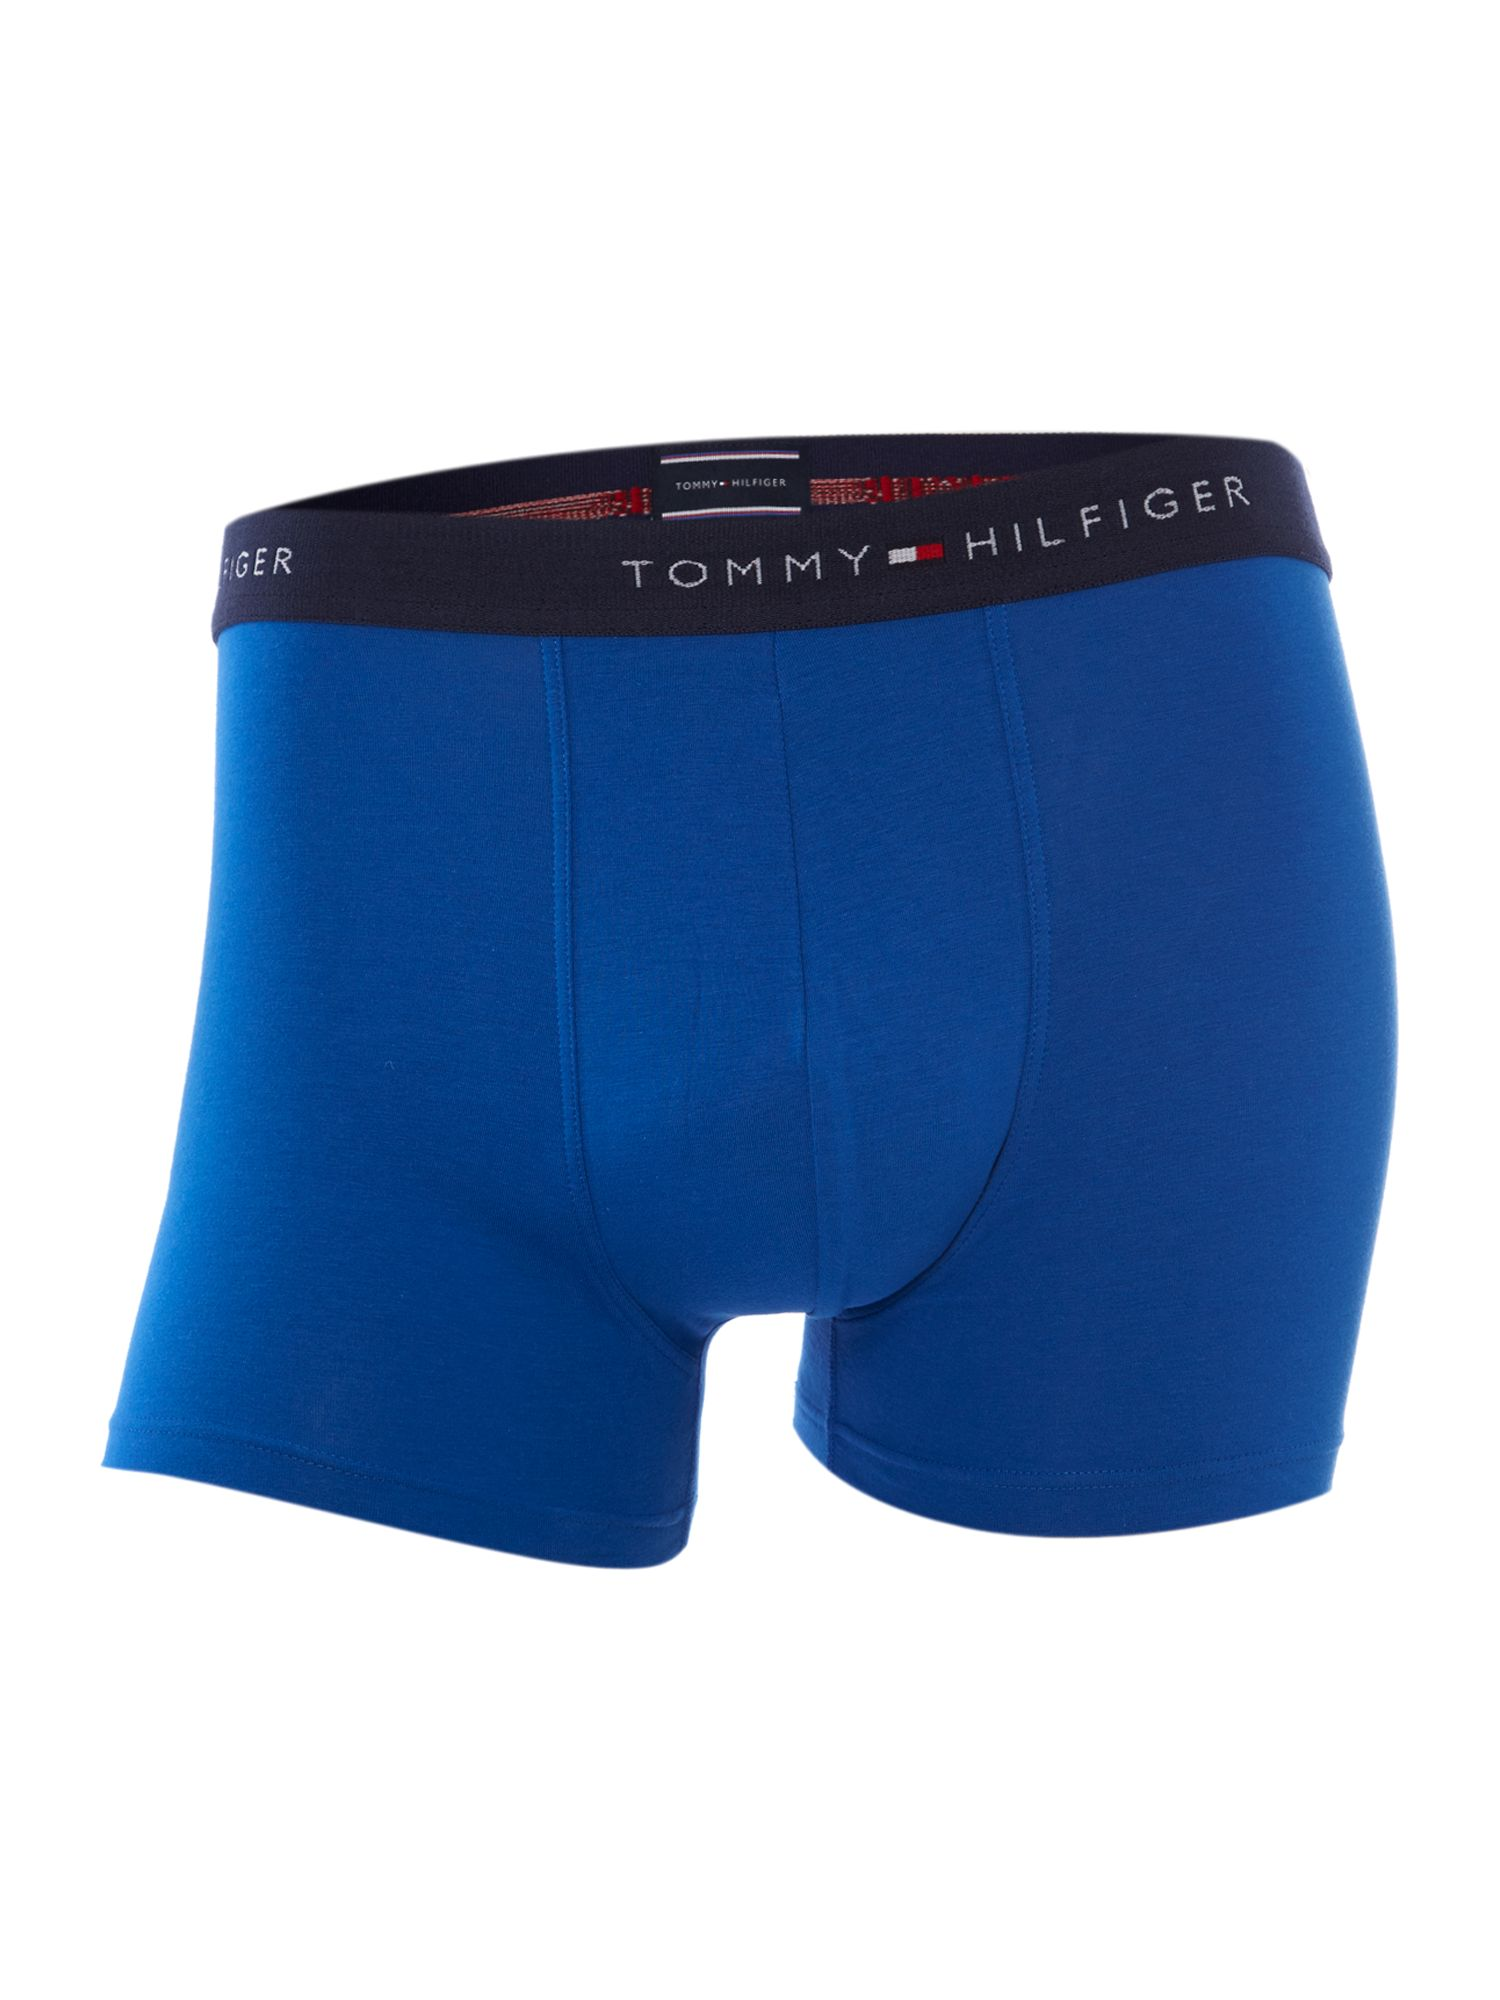 Stew solid underwear trunk